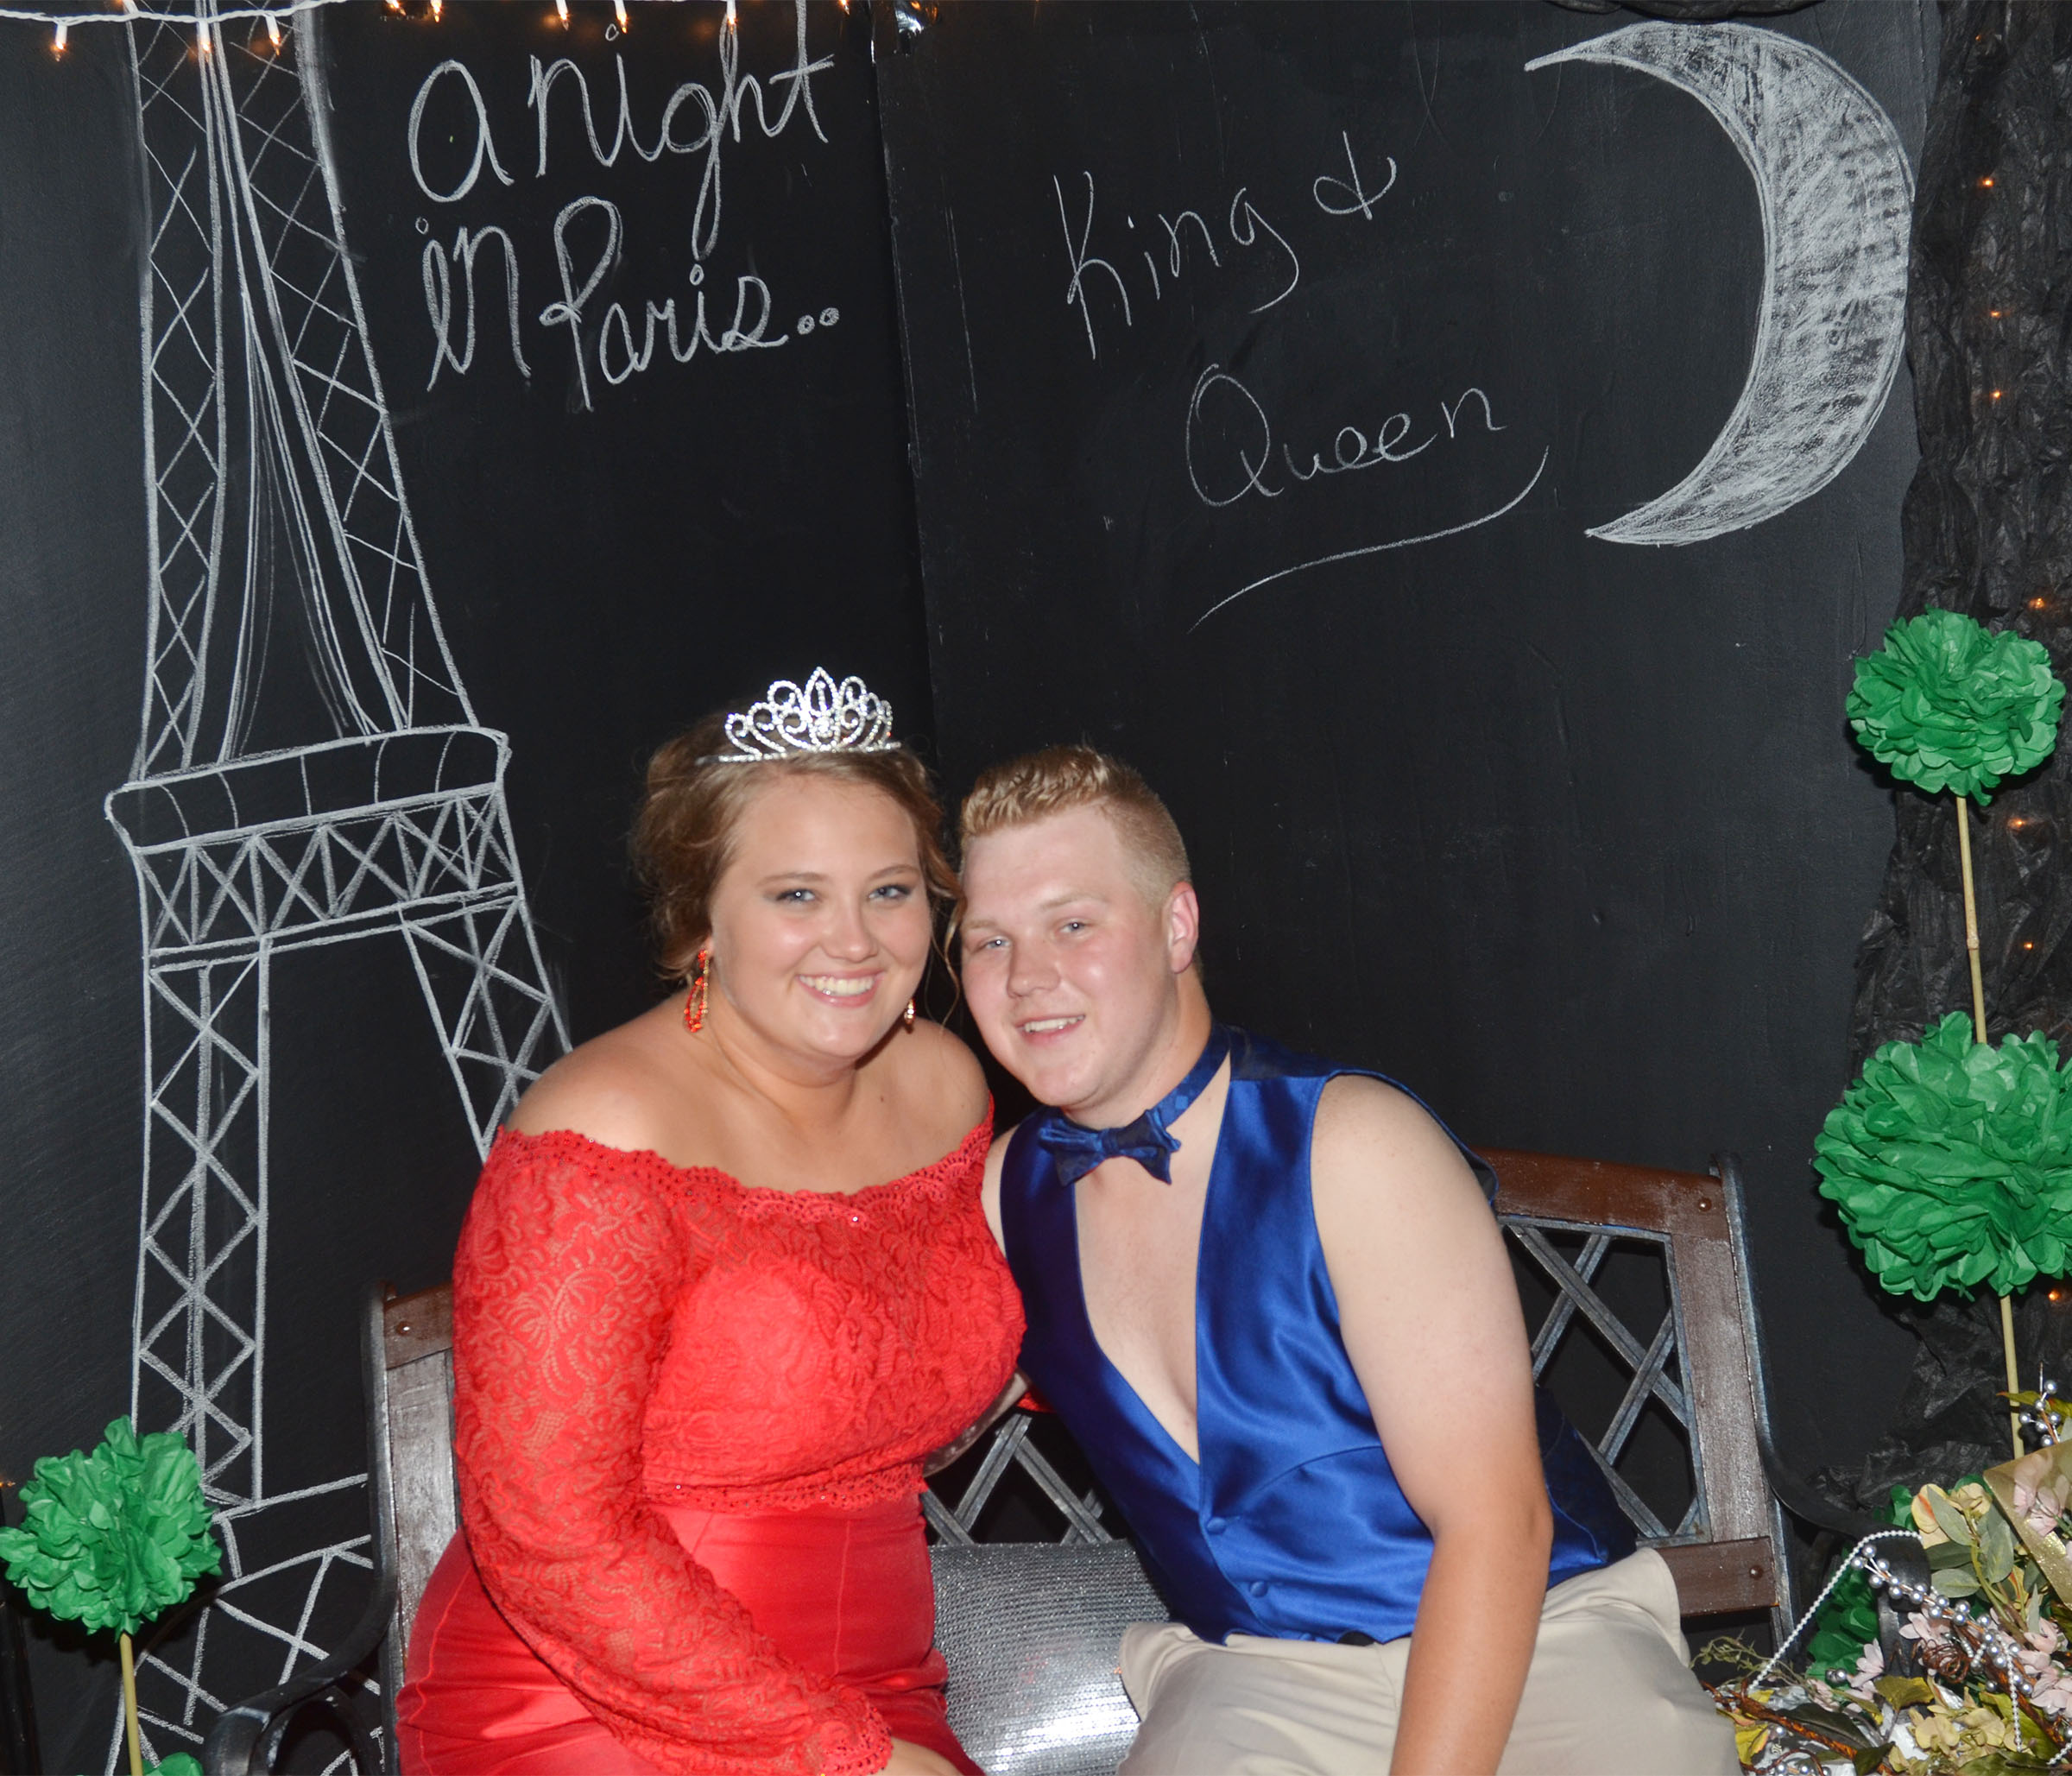 CHS seniors Noah Wagers and Brenna Wethington were named this year's prom king and queen.